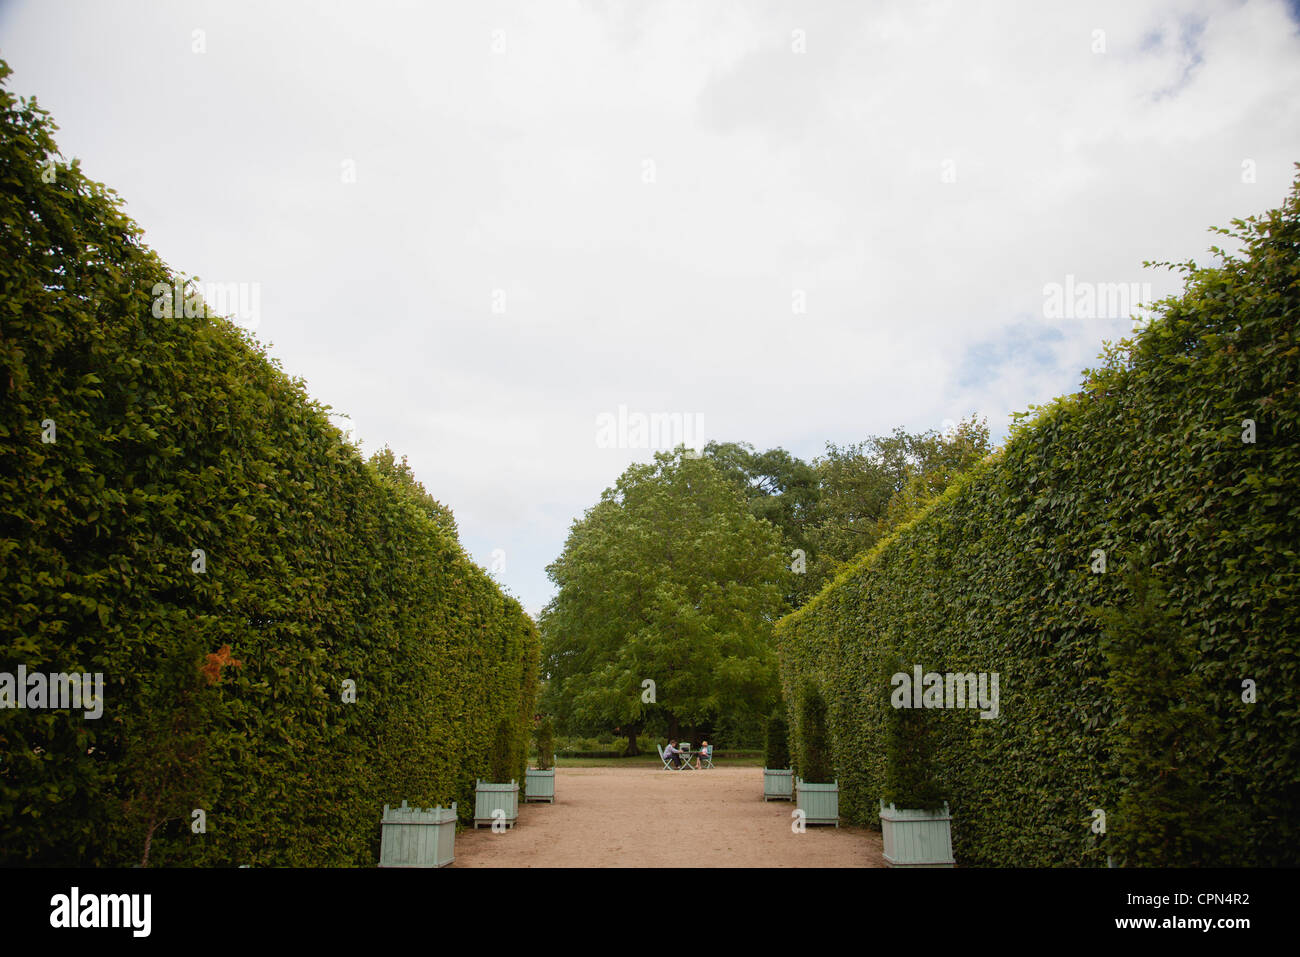 Hedges lining path in park - Stock Image